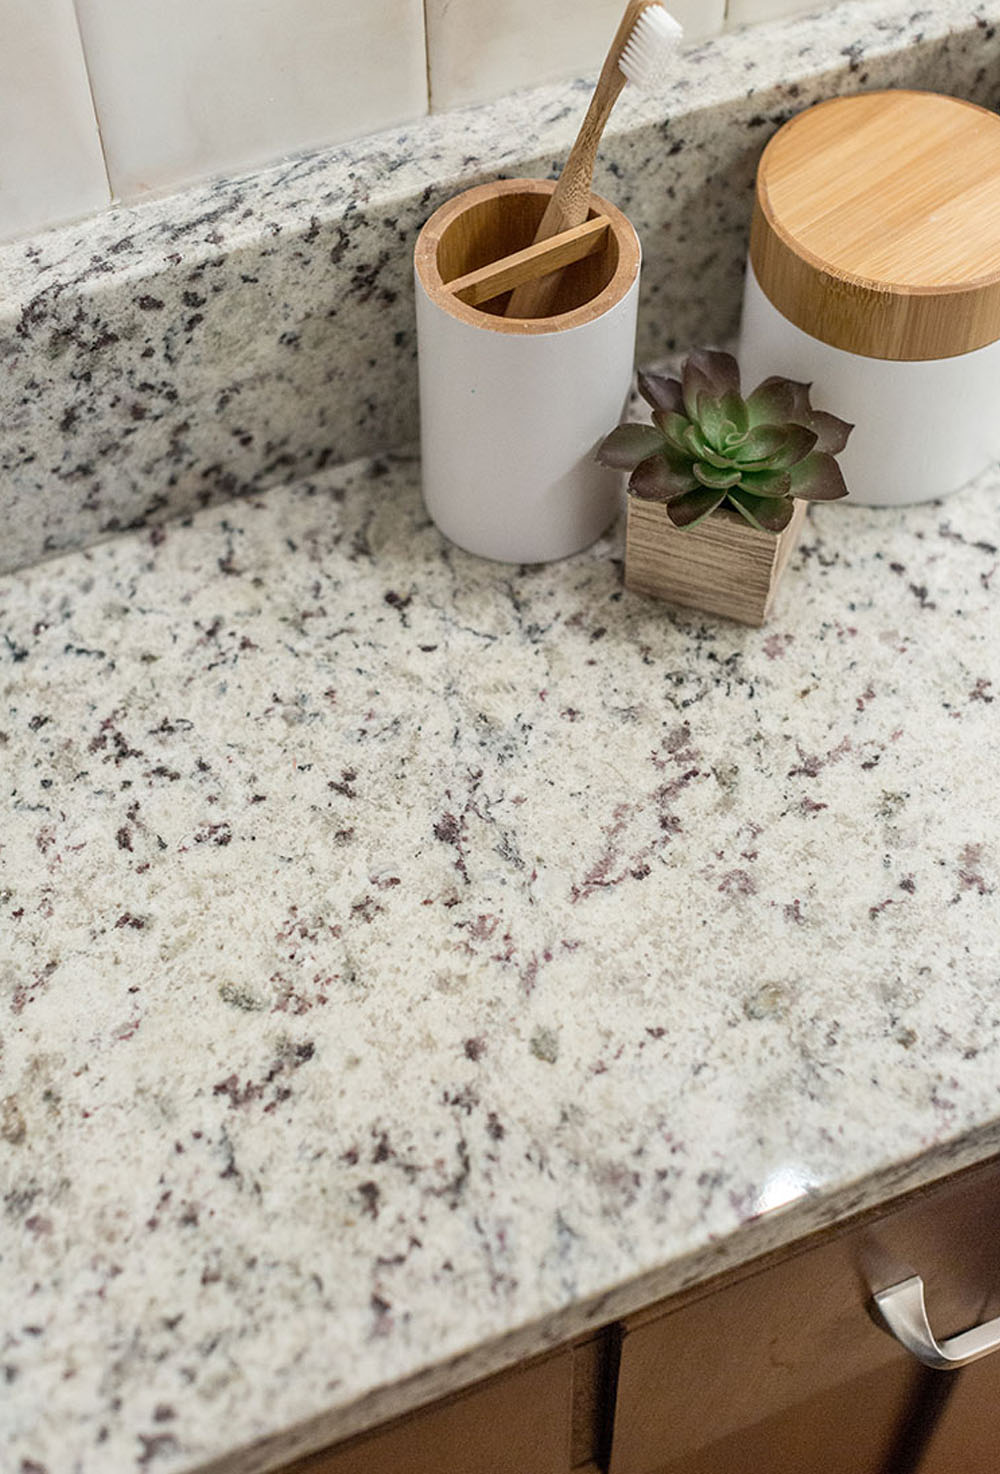 Marble countertop with a white toothbrush holder and a small plant.